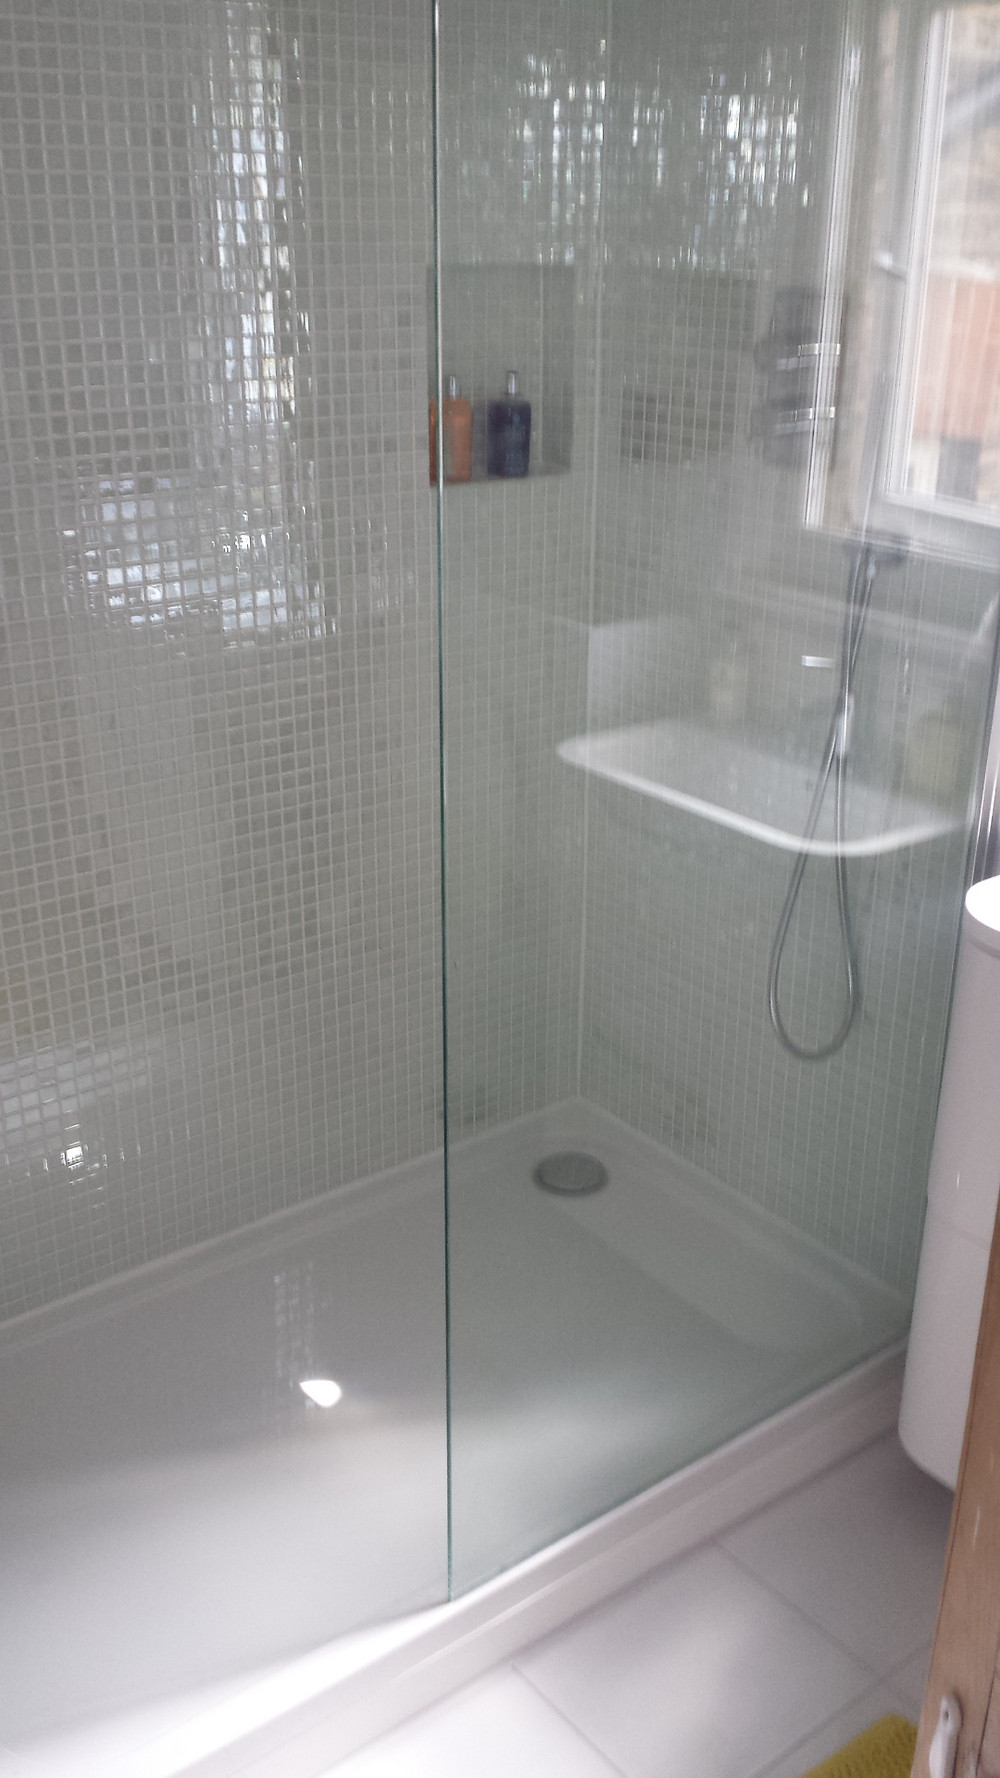 Mosaic tiling shower enclosure